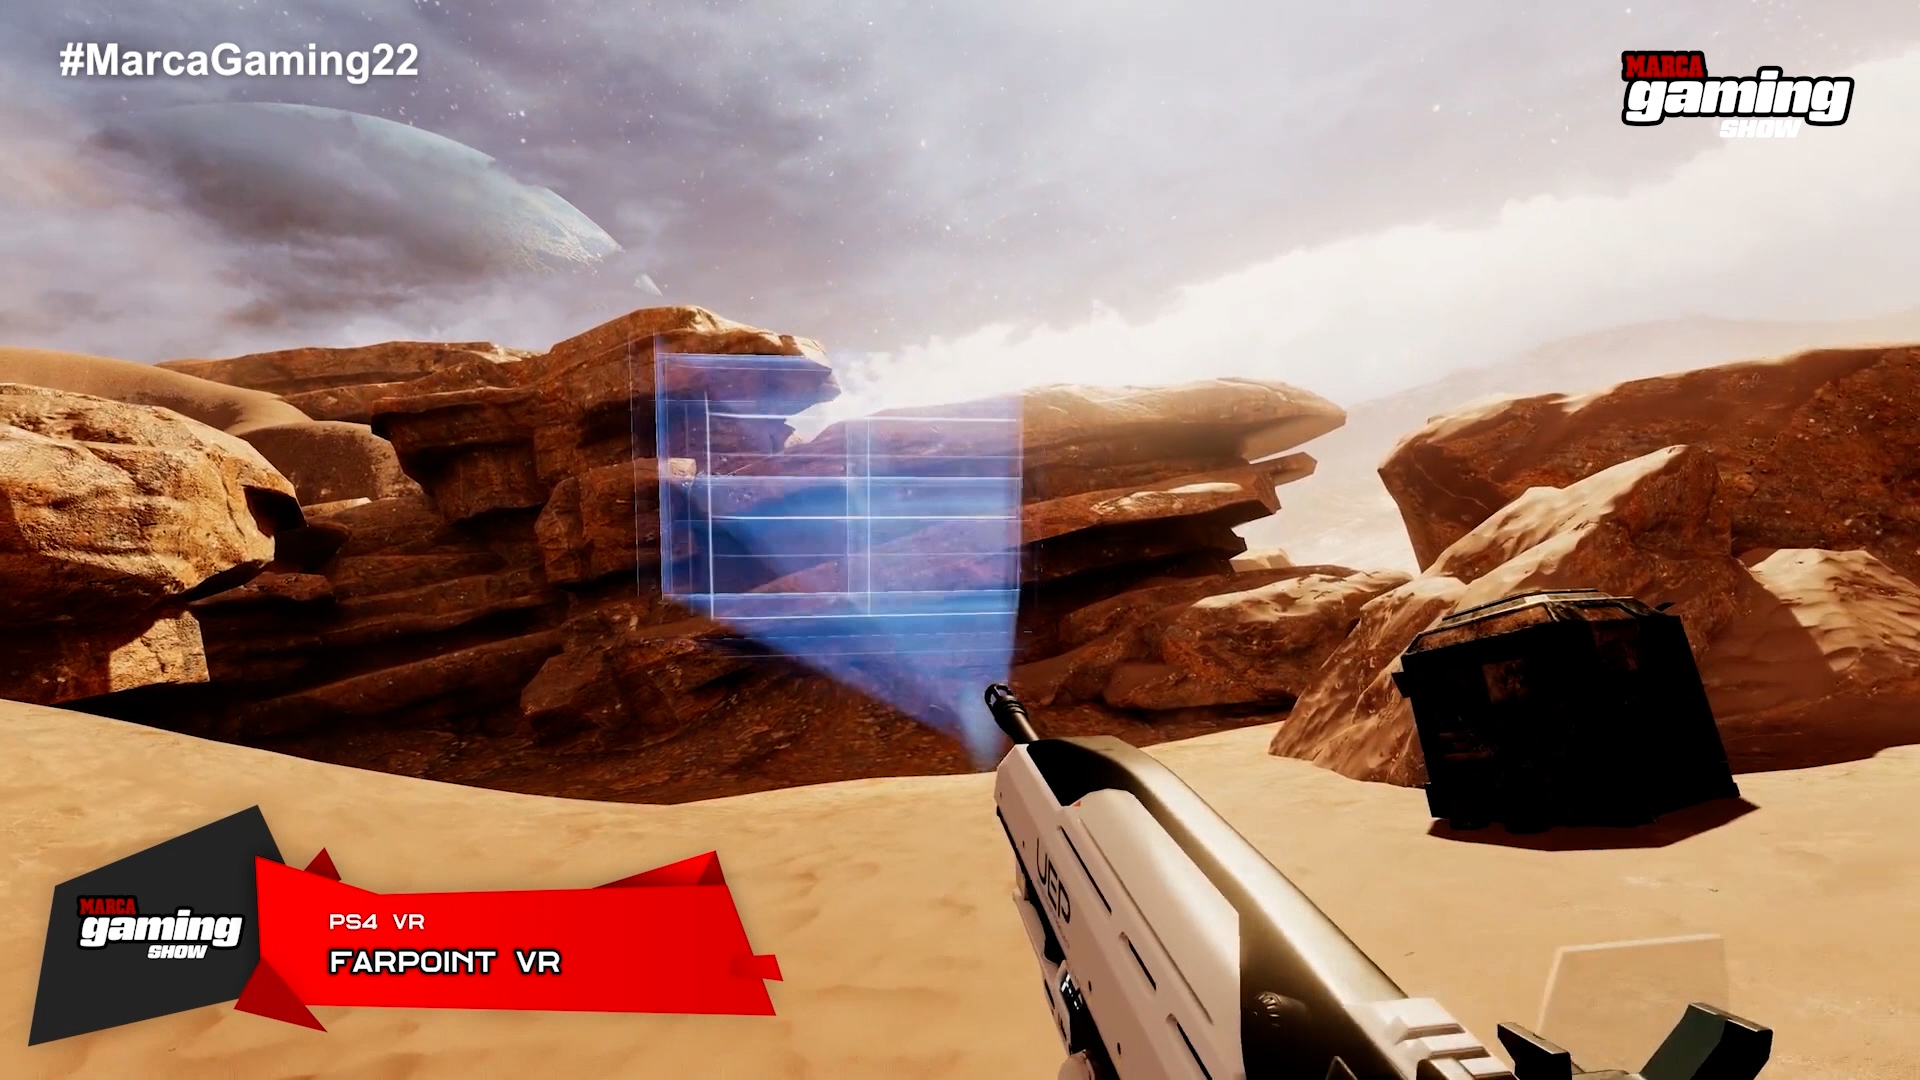 Farpoint VR (PS4, PS5)